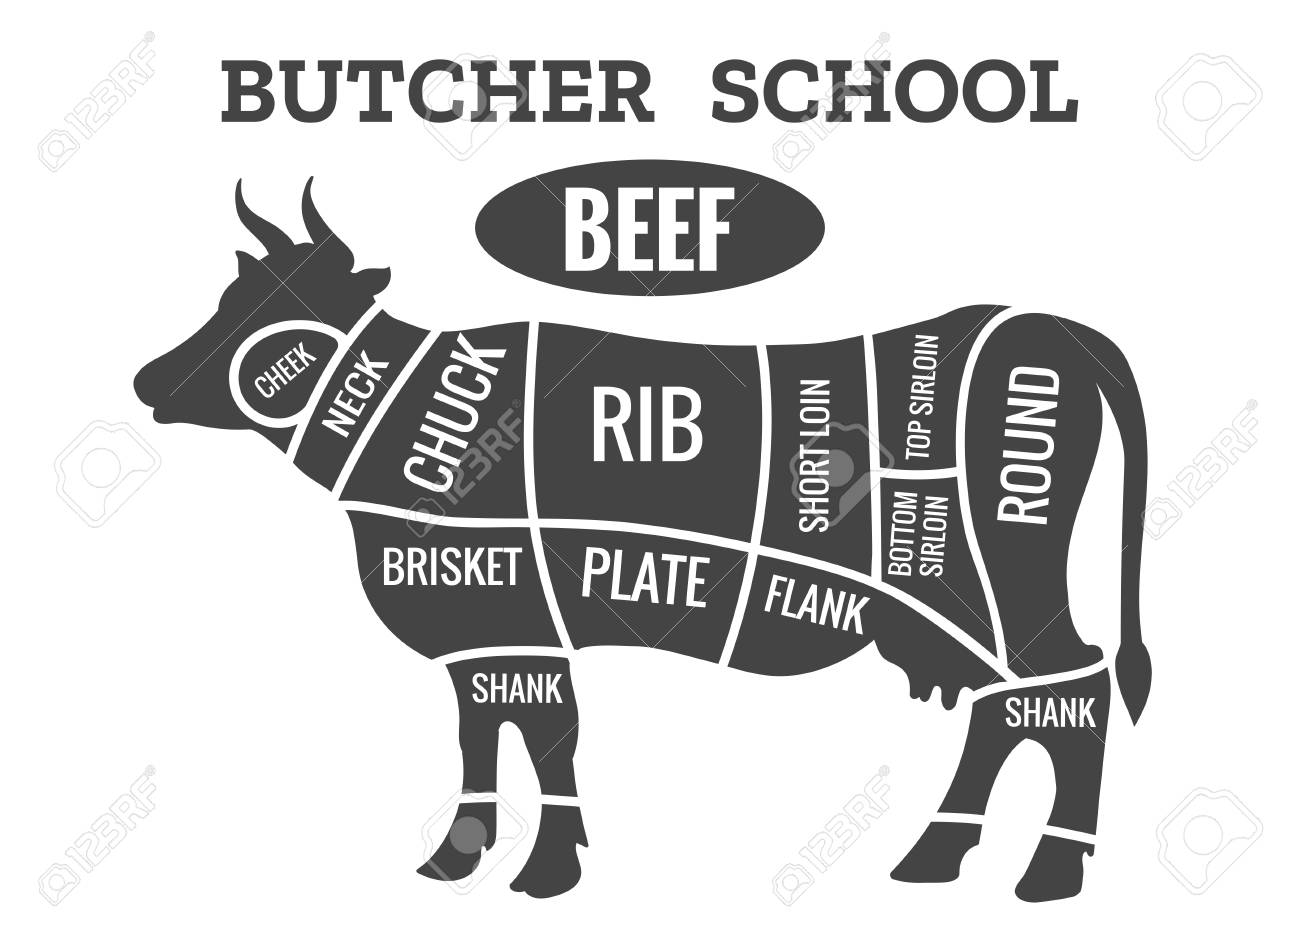 91662608 cow butcher diagram cutting beef meat or steak cuts diagram chart for restaurant poster vector illus cow butcher diagram cutting beef meat or steak cuts diagram